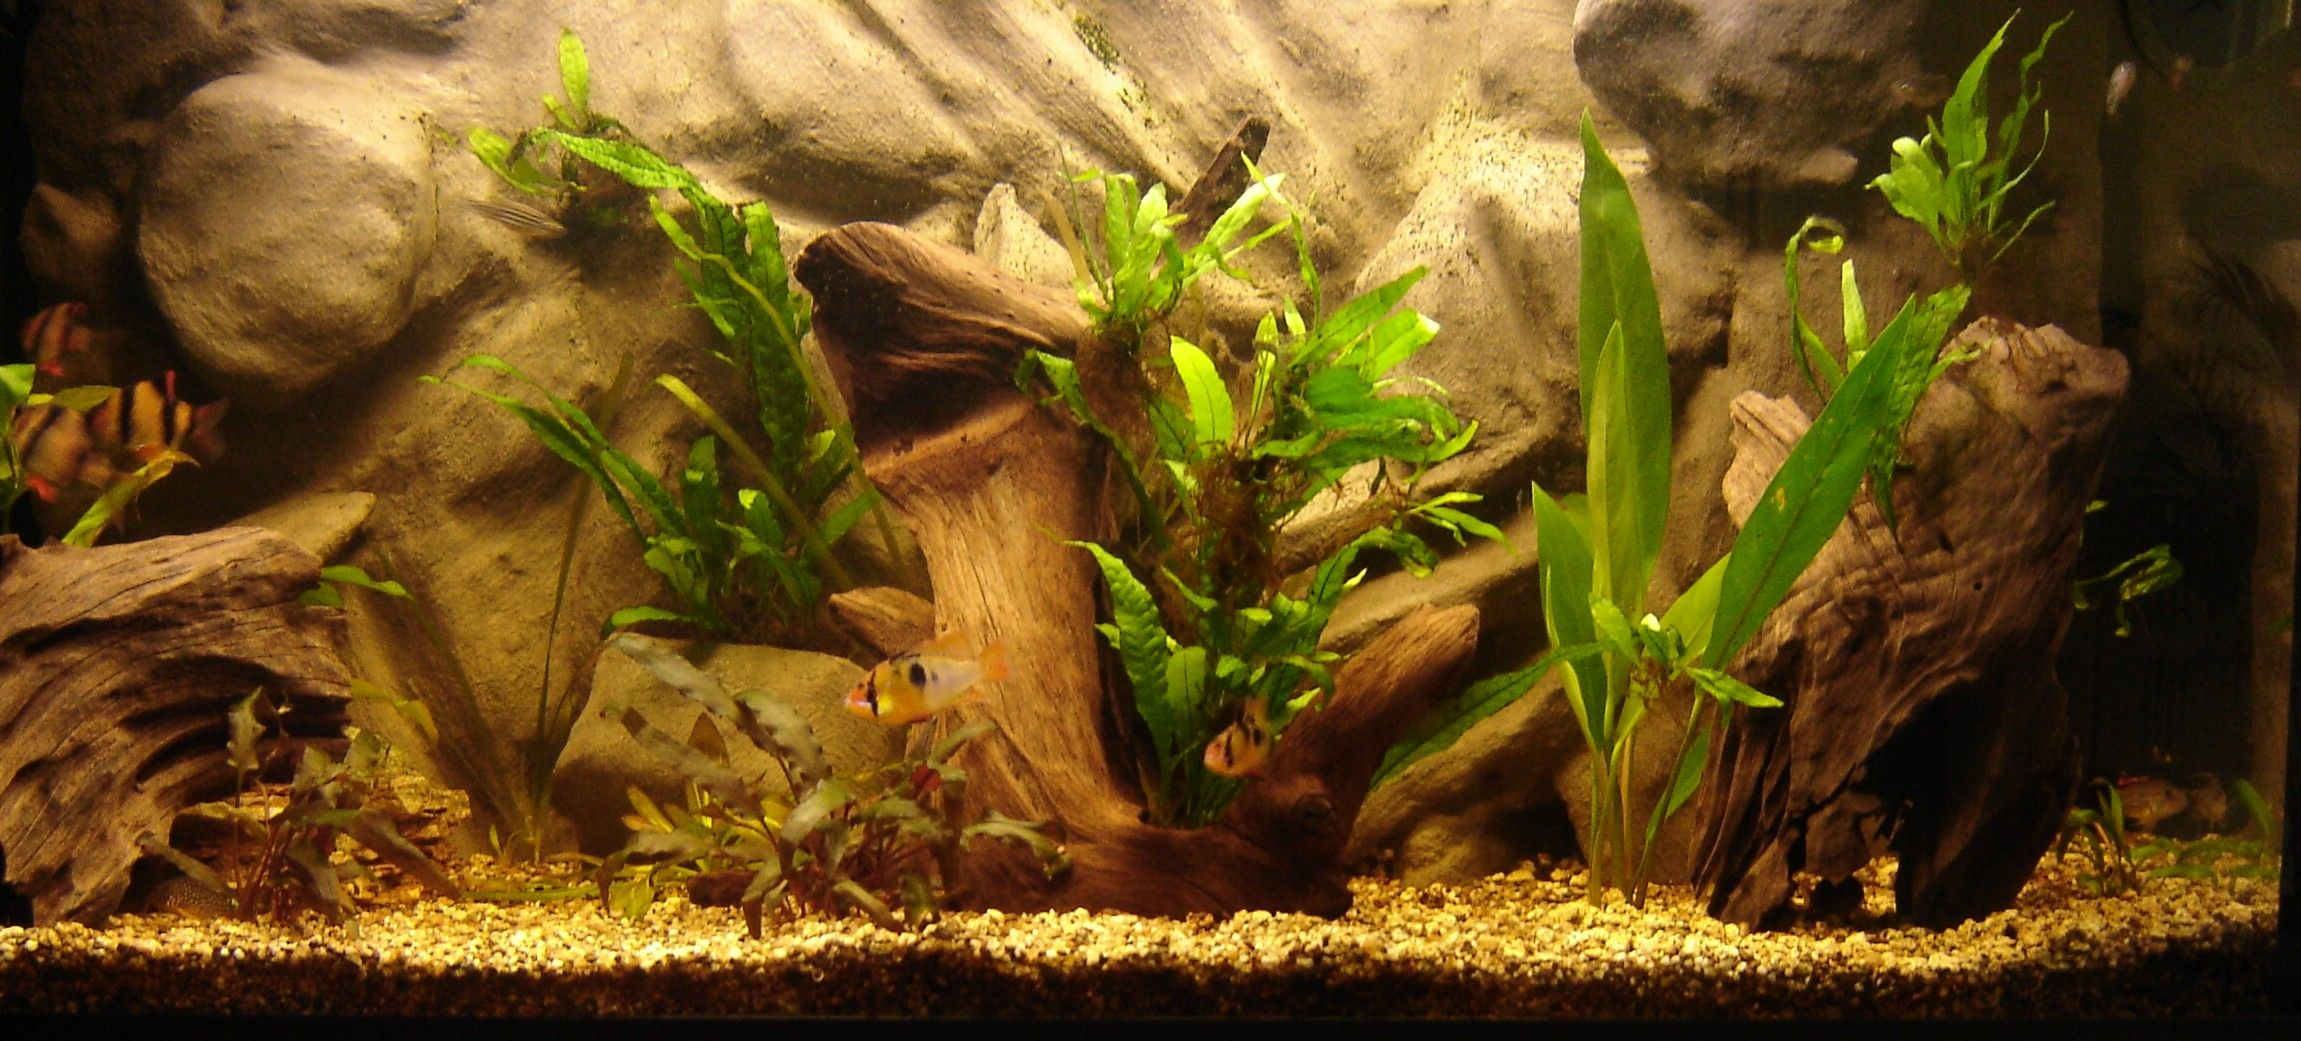 Image Result For Free Printable Reptile Tank Backgrounds Aquarium Backgrounds Reptile Tank Fish Tank